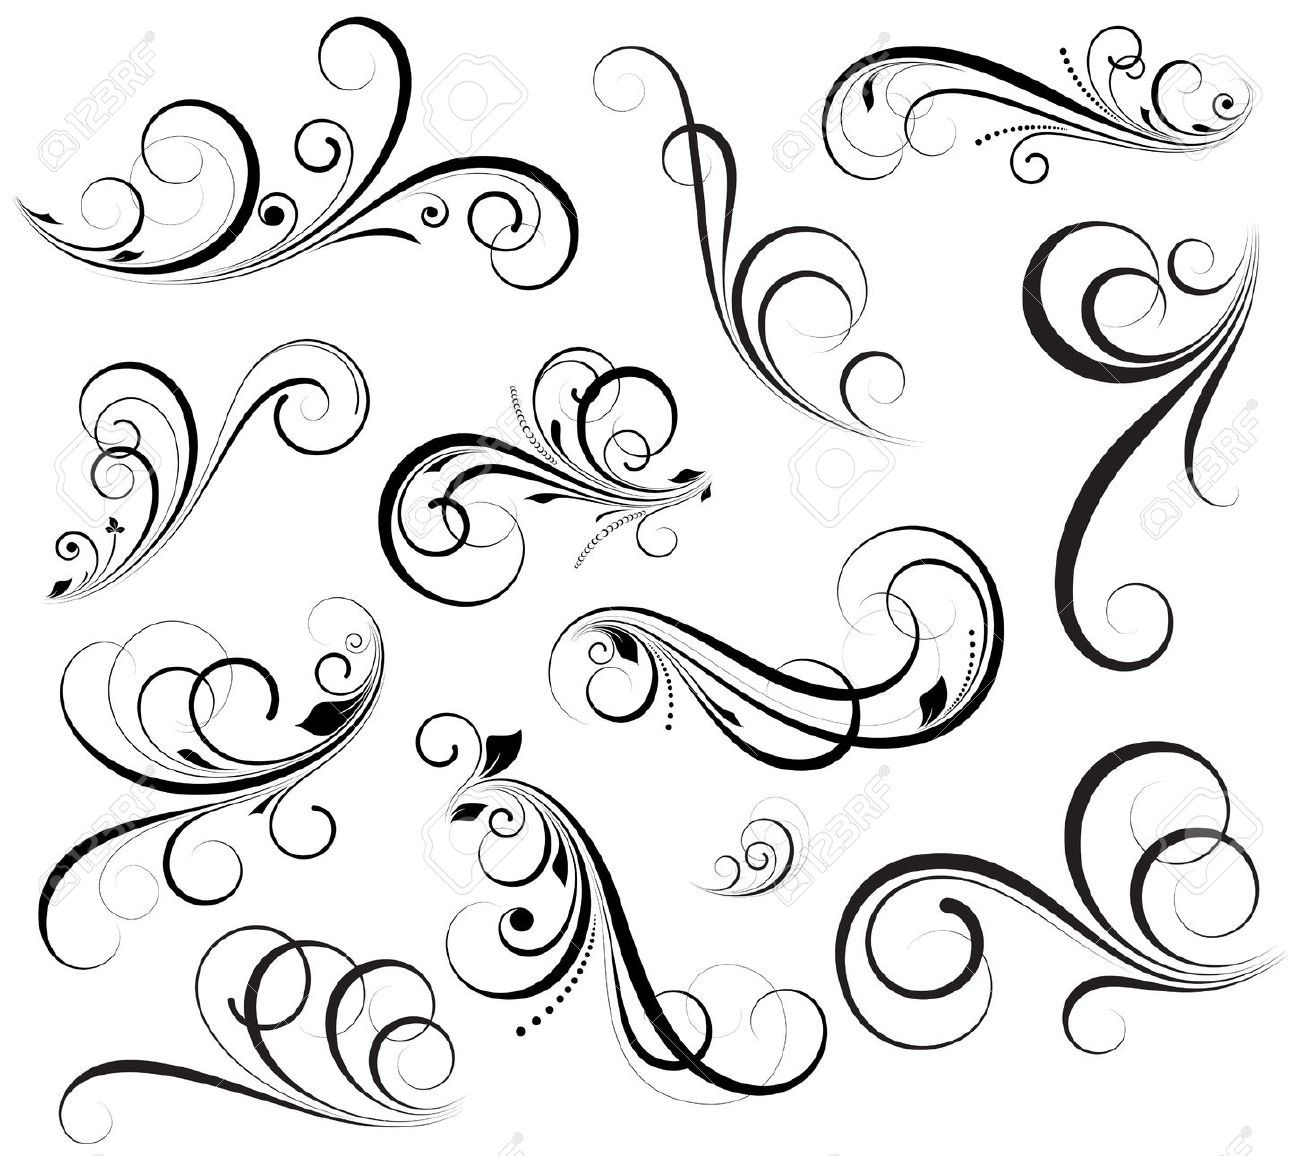 Swirls vectors royalty free cliparts vectors and stock for Swirl tattoo designs